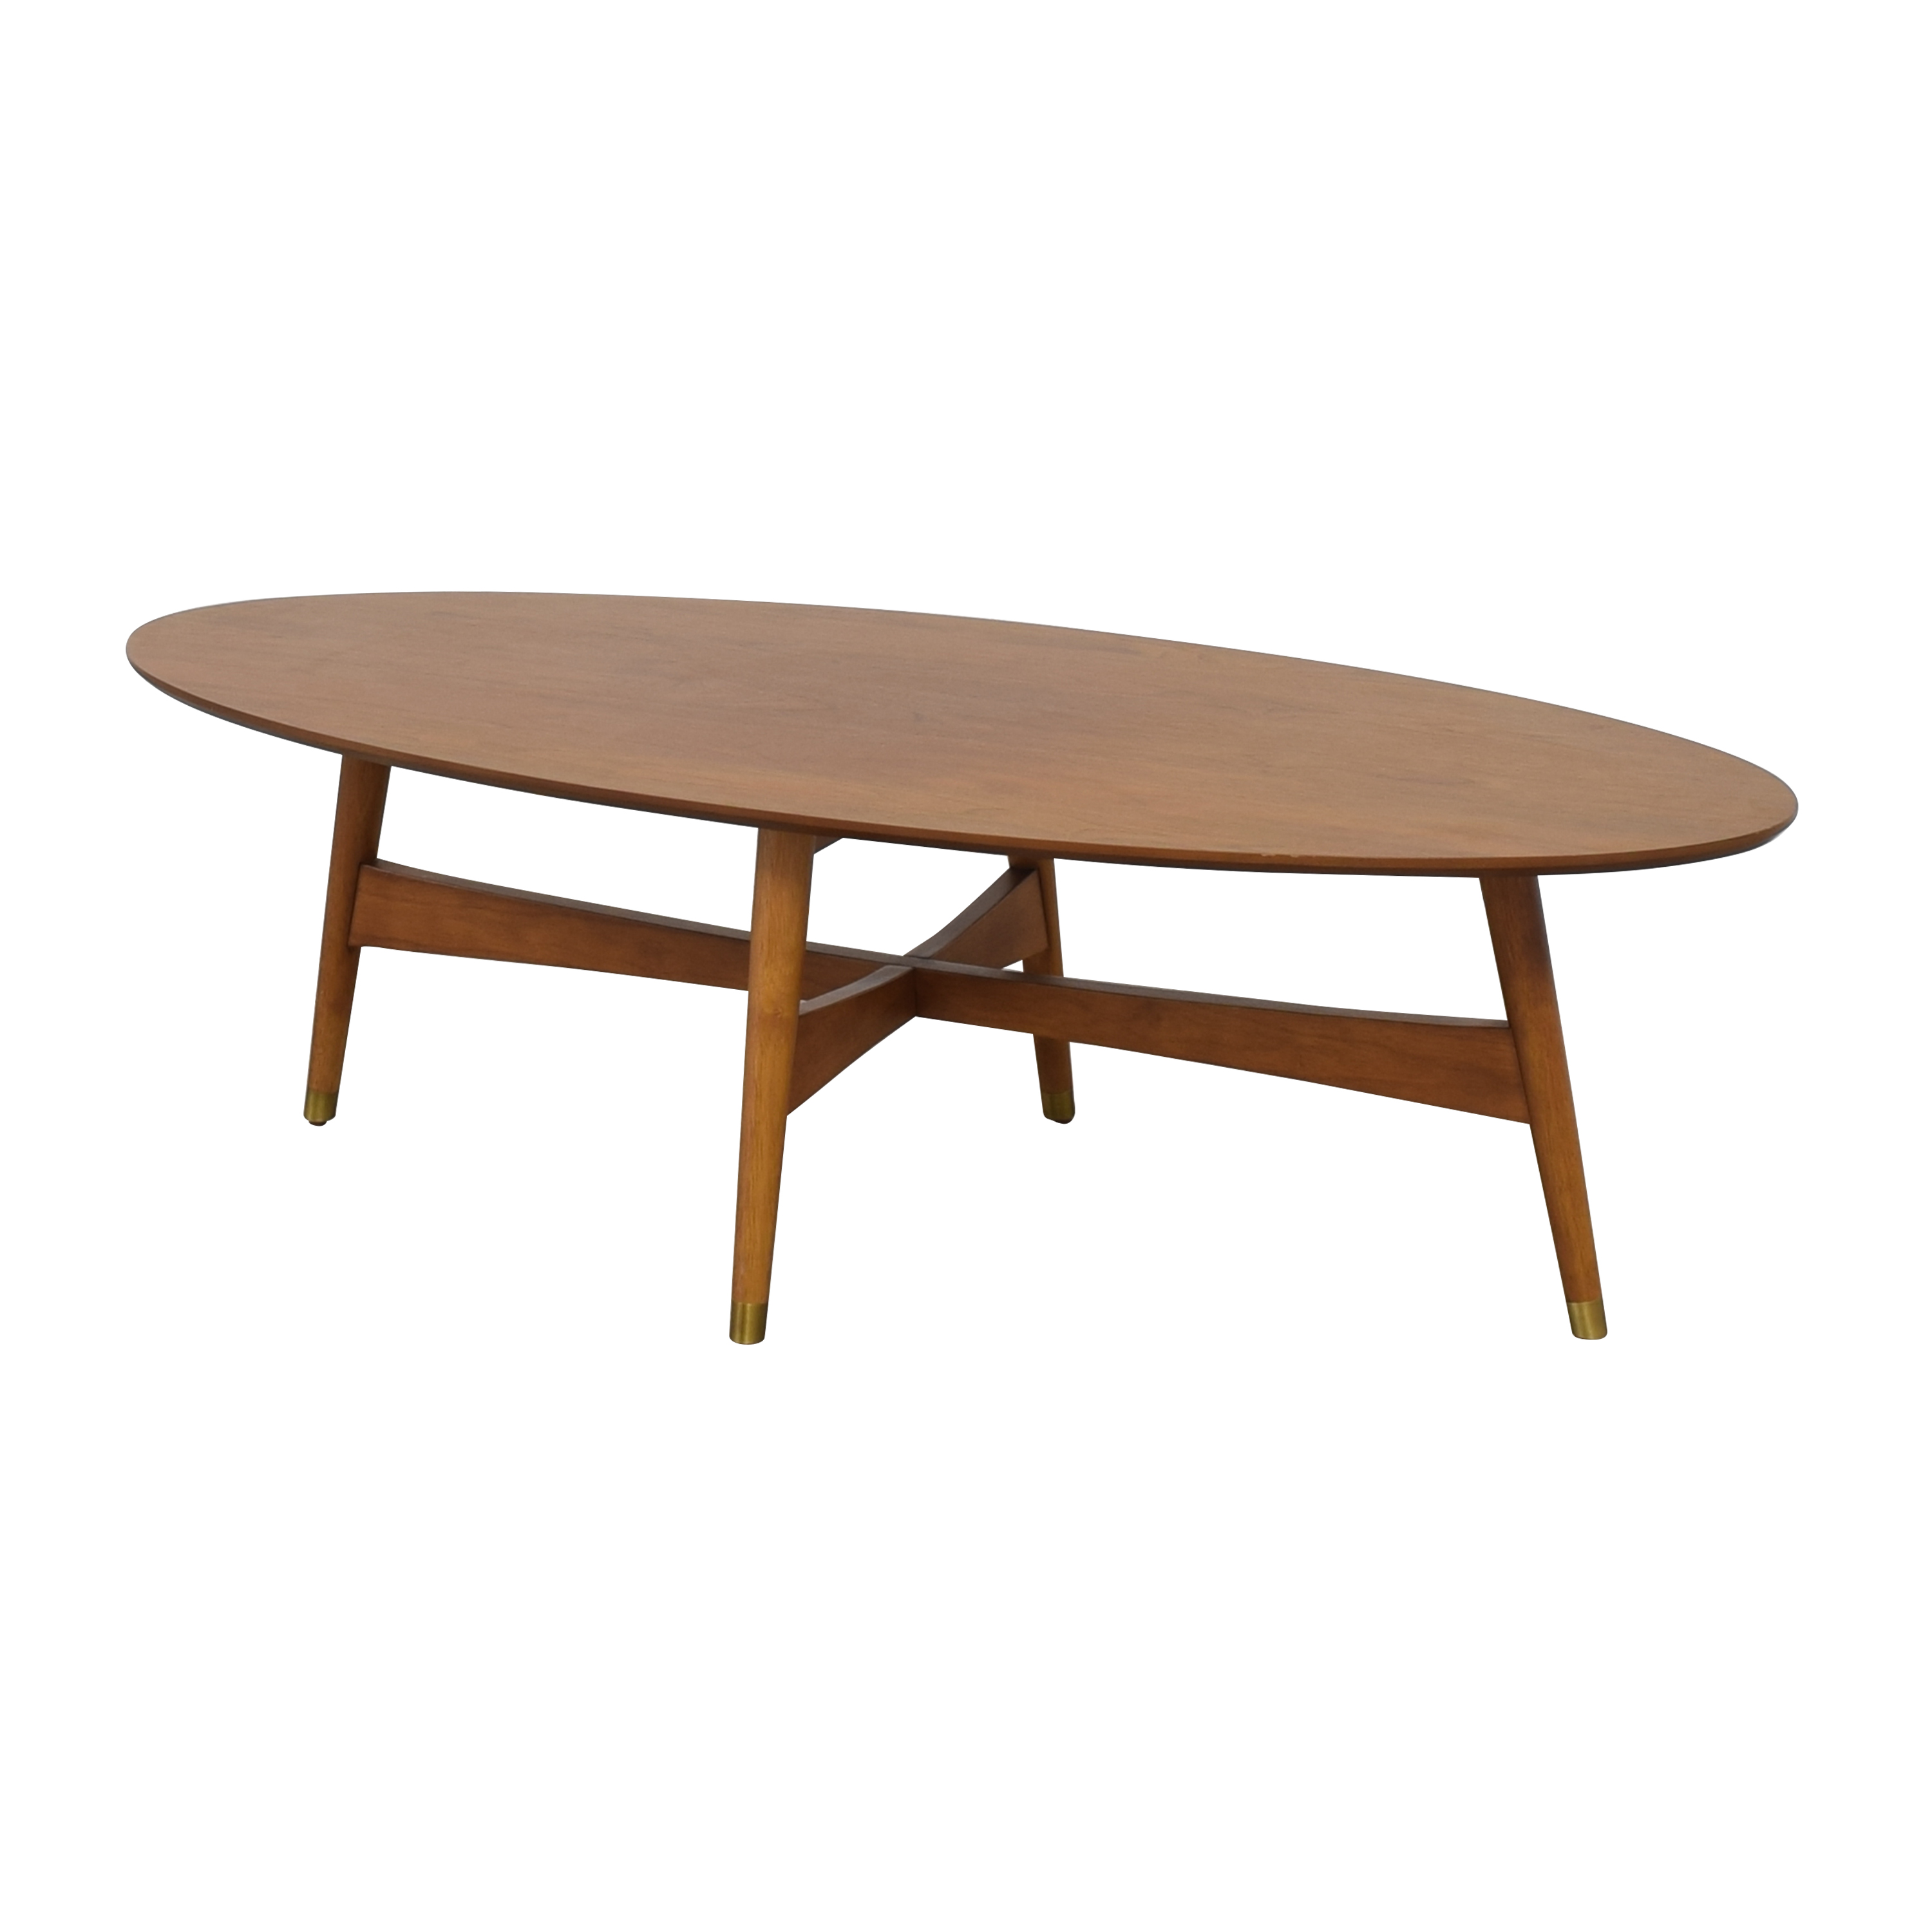 West Elm West Elm Reeve Mid Century Oval Coffee Table dimensions